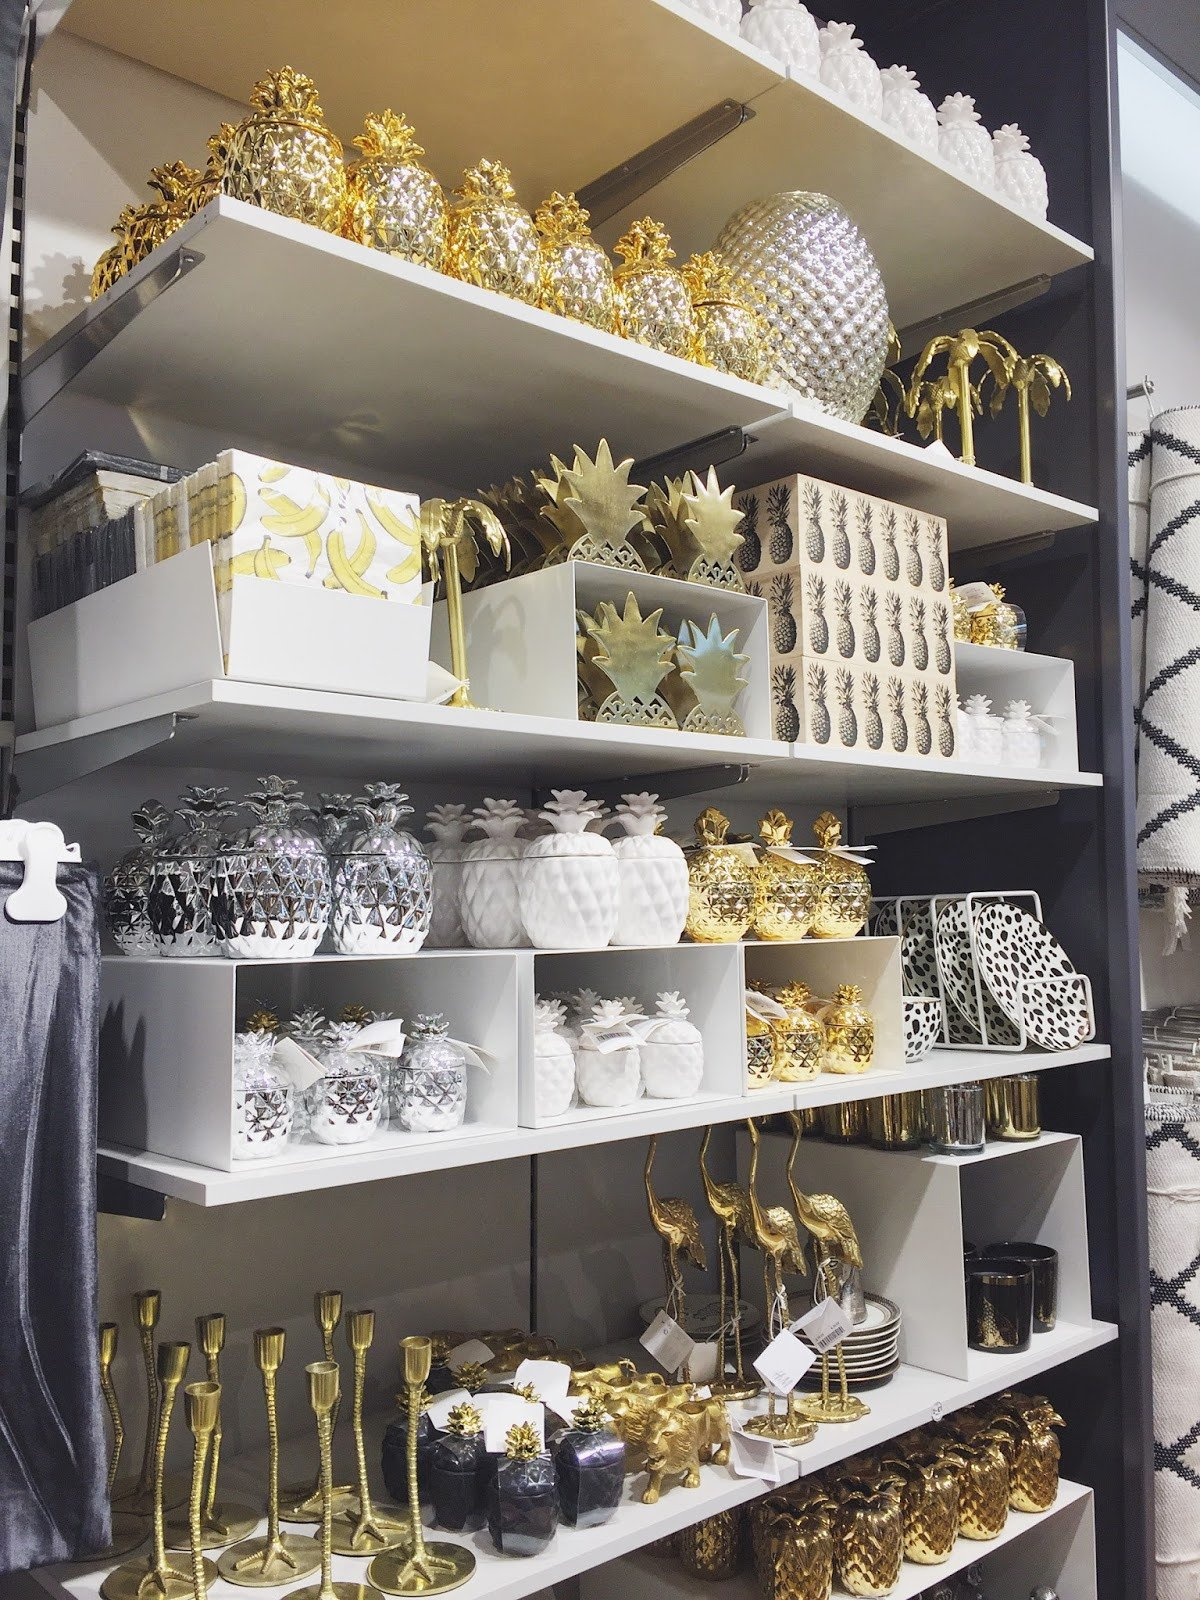 H and M Home Decor Elegant I Finally Made It to H&m Home Katie Writes